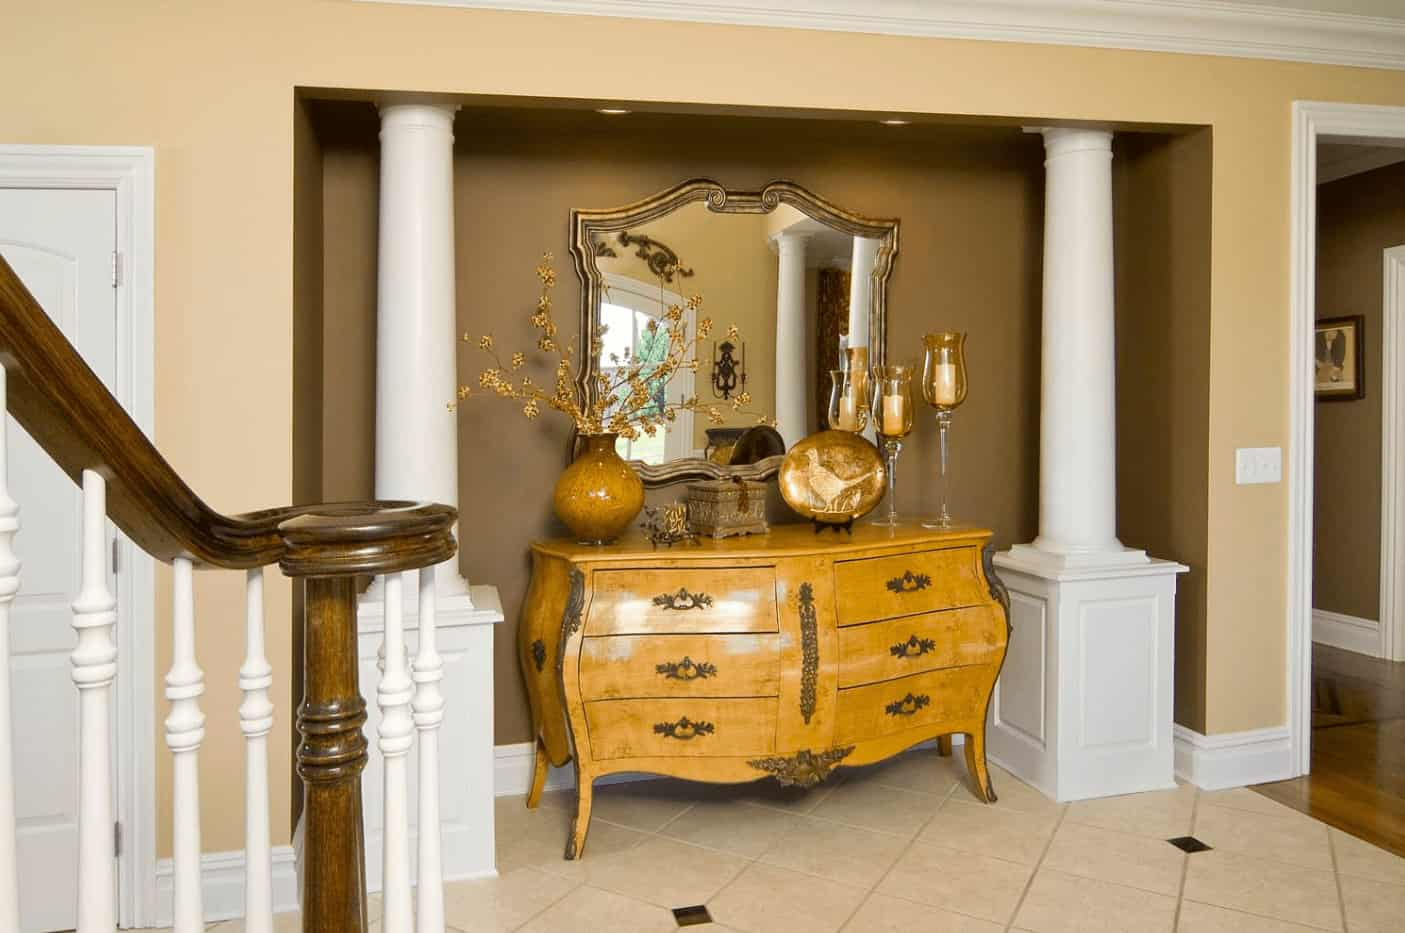 A wooden console table with mirror and brass decors is situated inside the inset wall in this foyer lined with a pair of white columns.